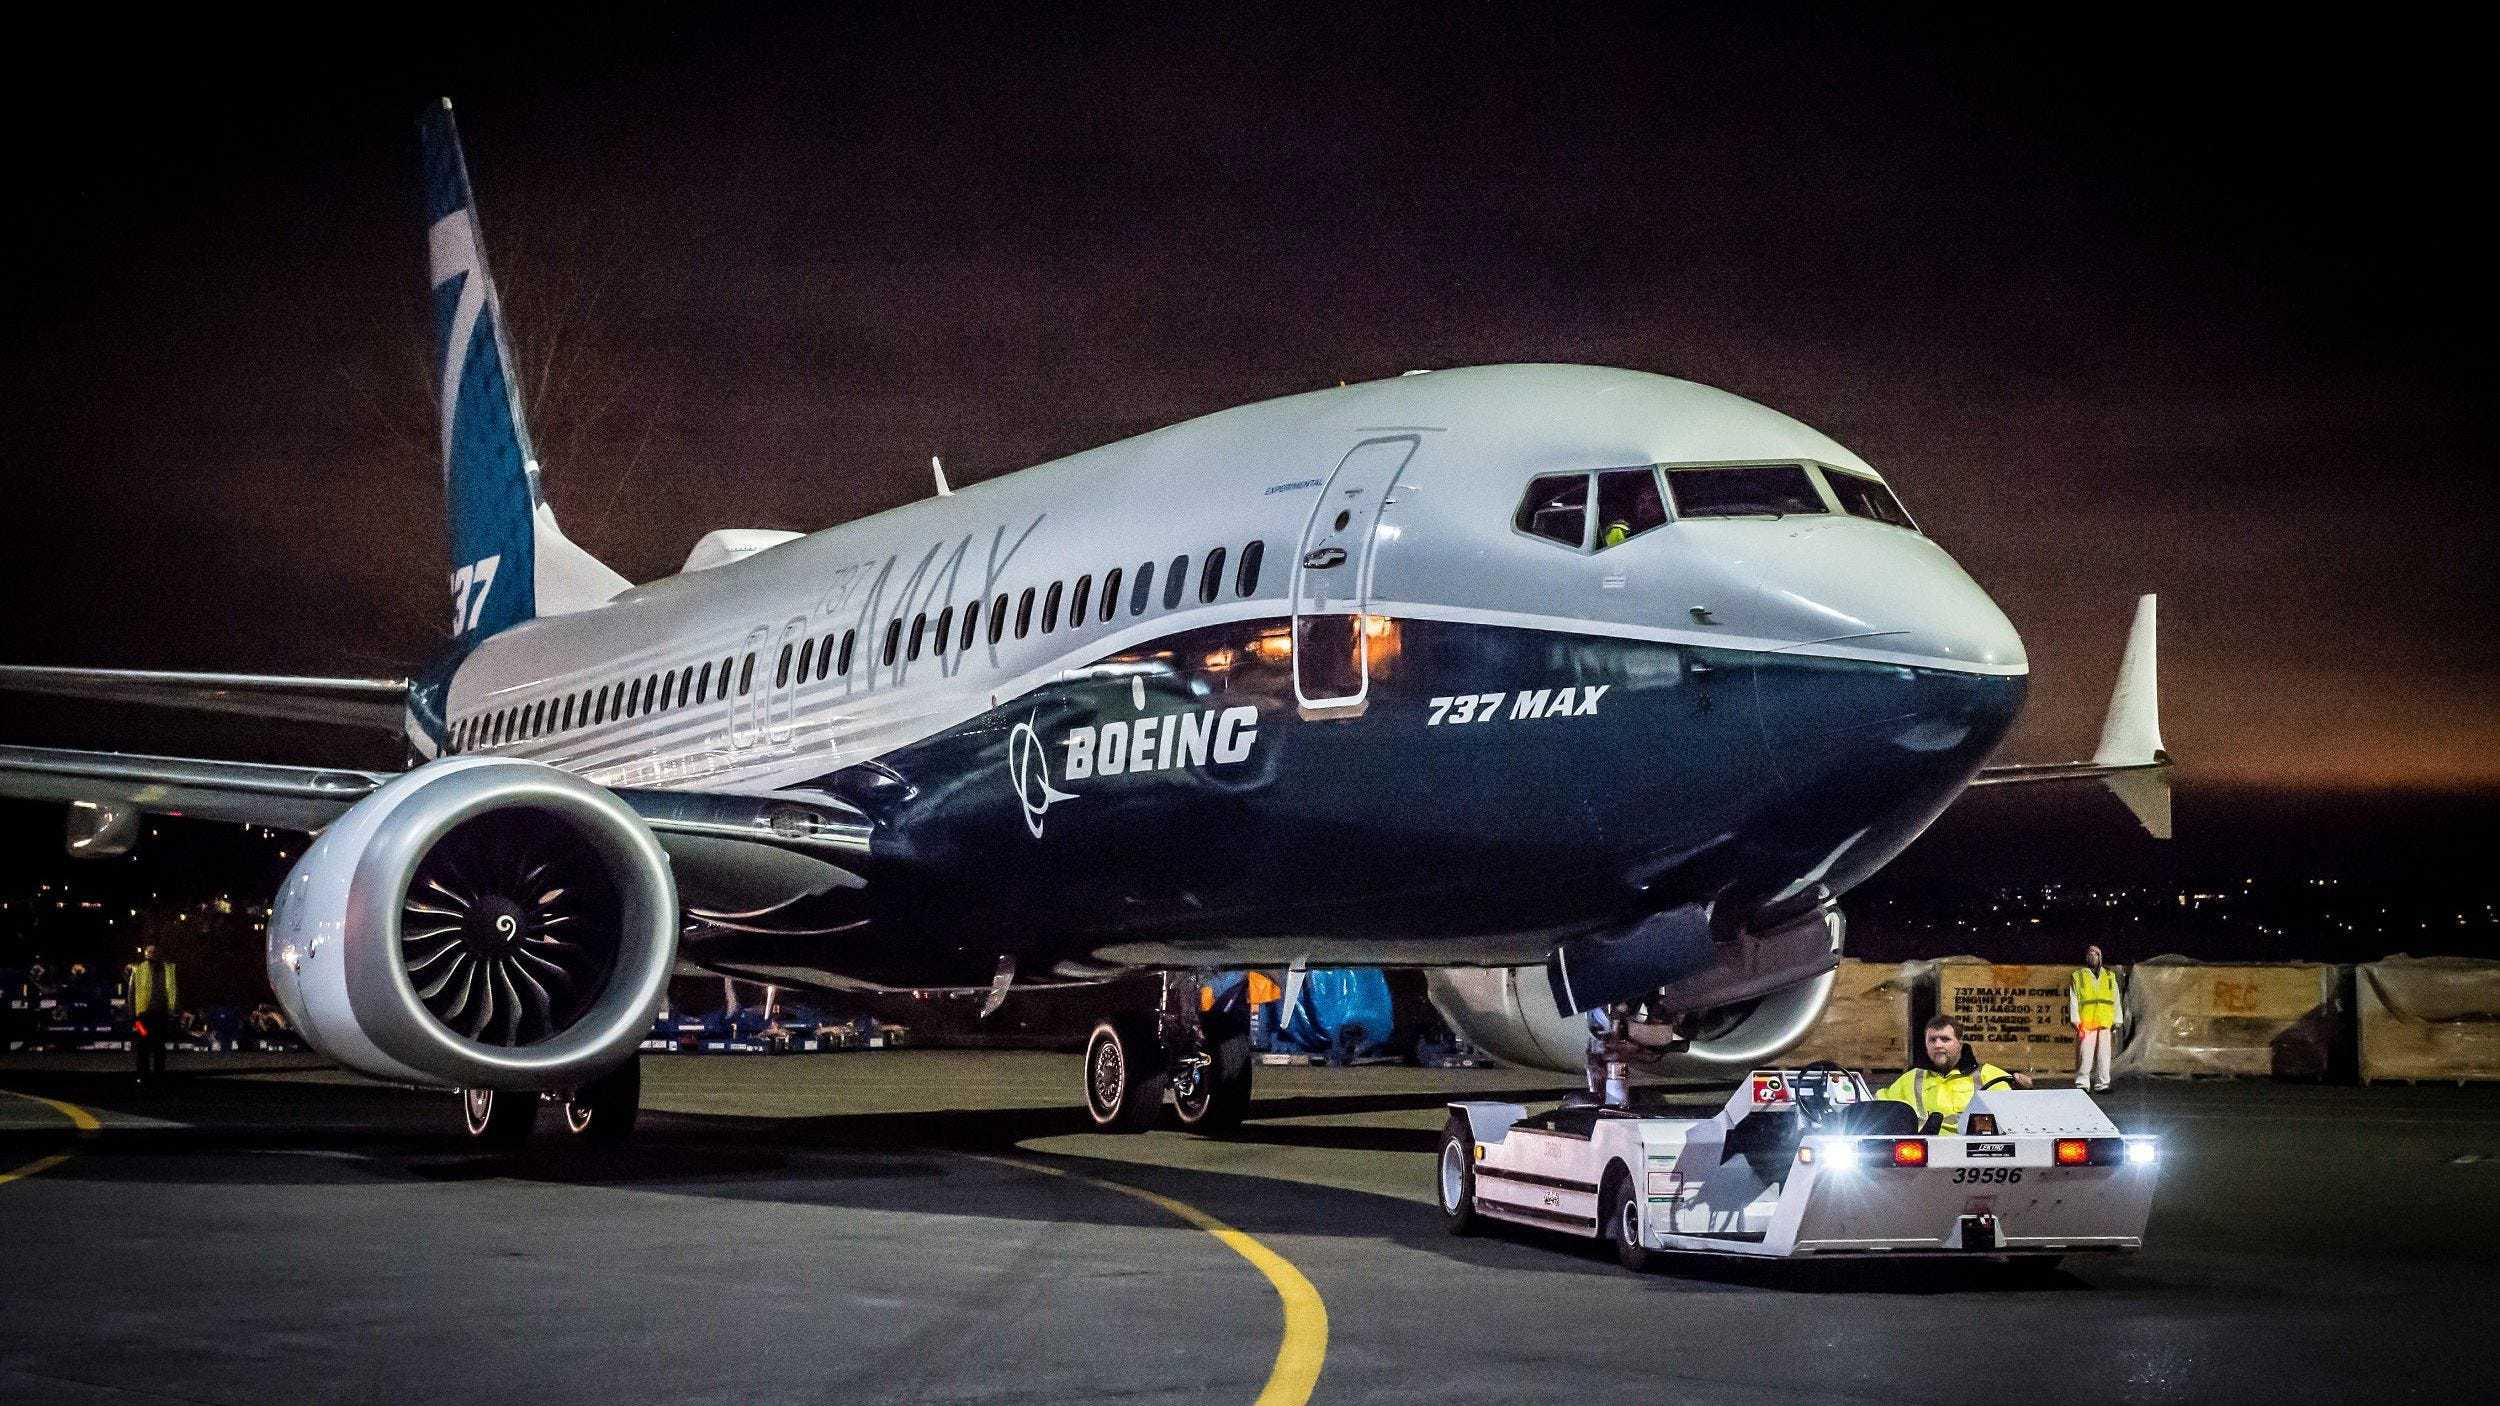 737 Max crashes, grossly insufficient: Mistakes led to crashes